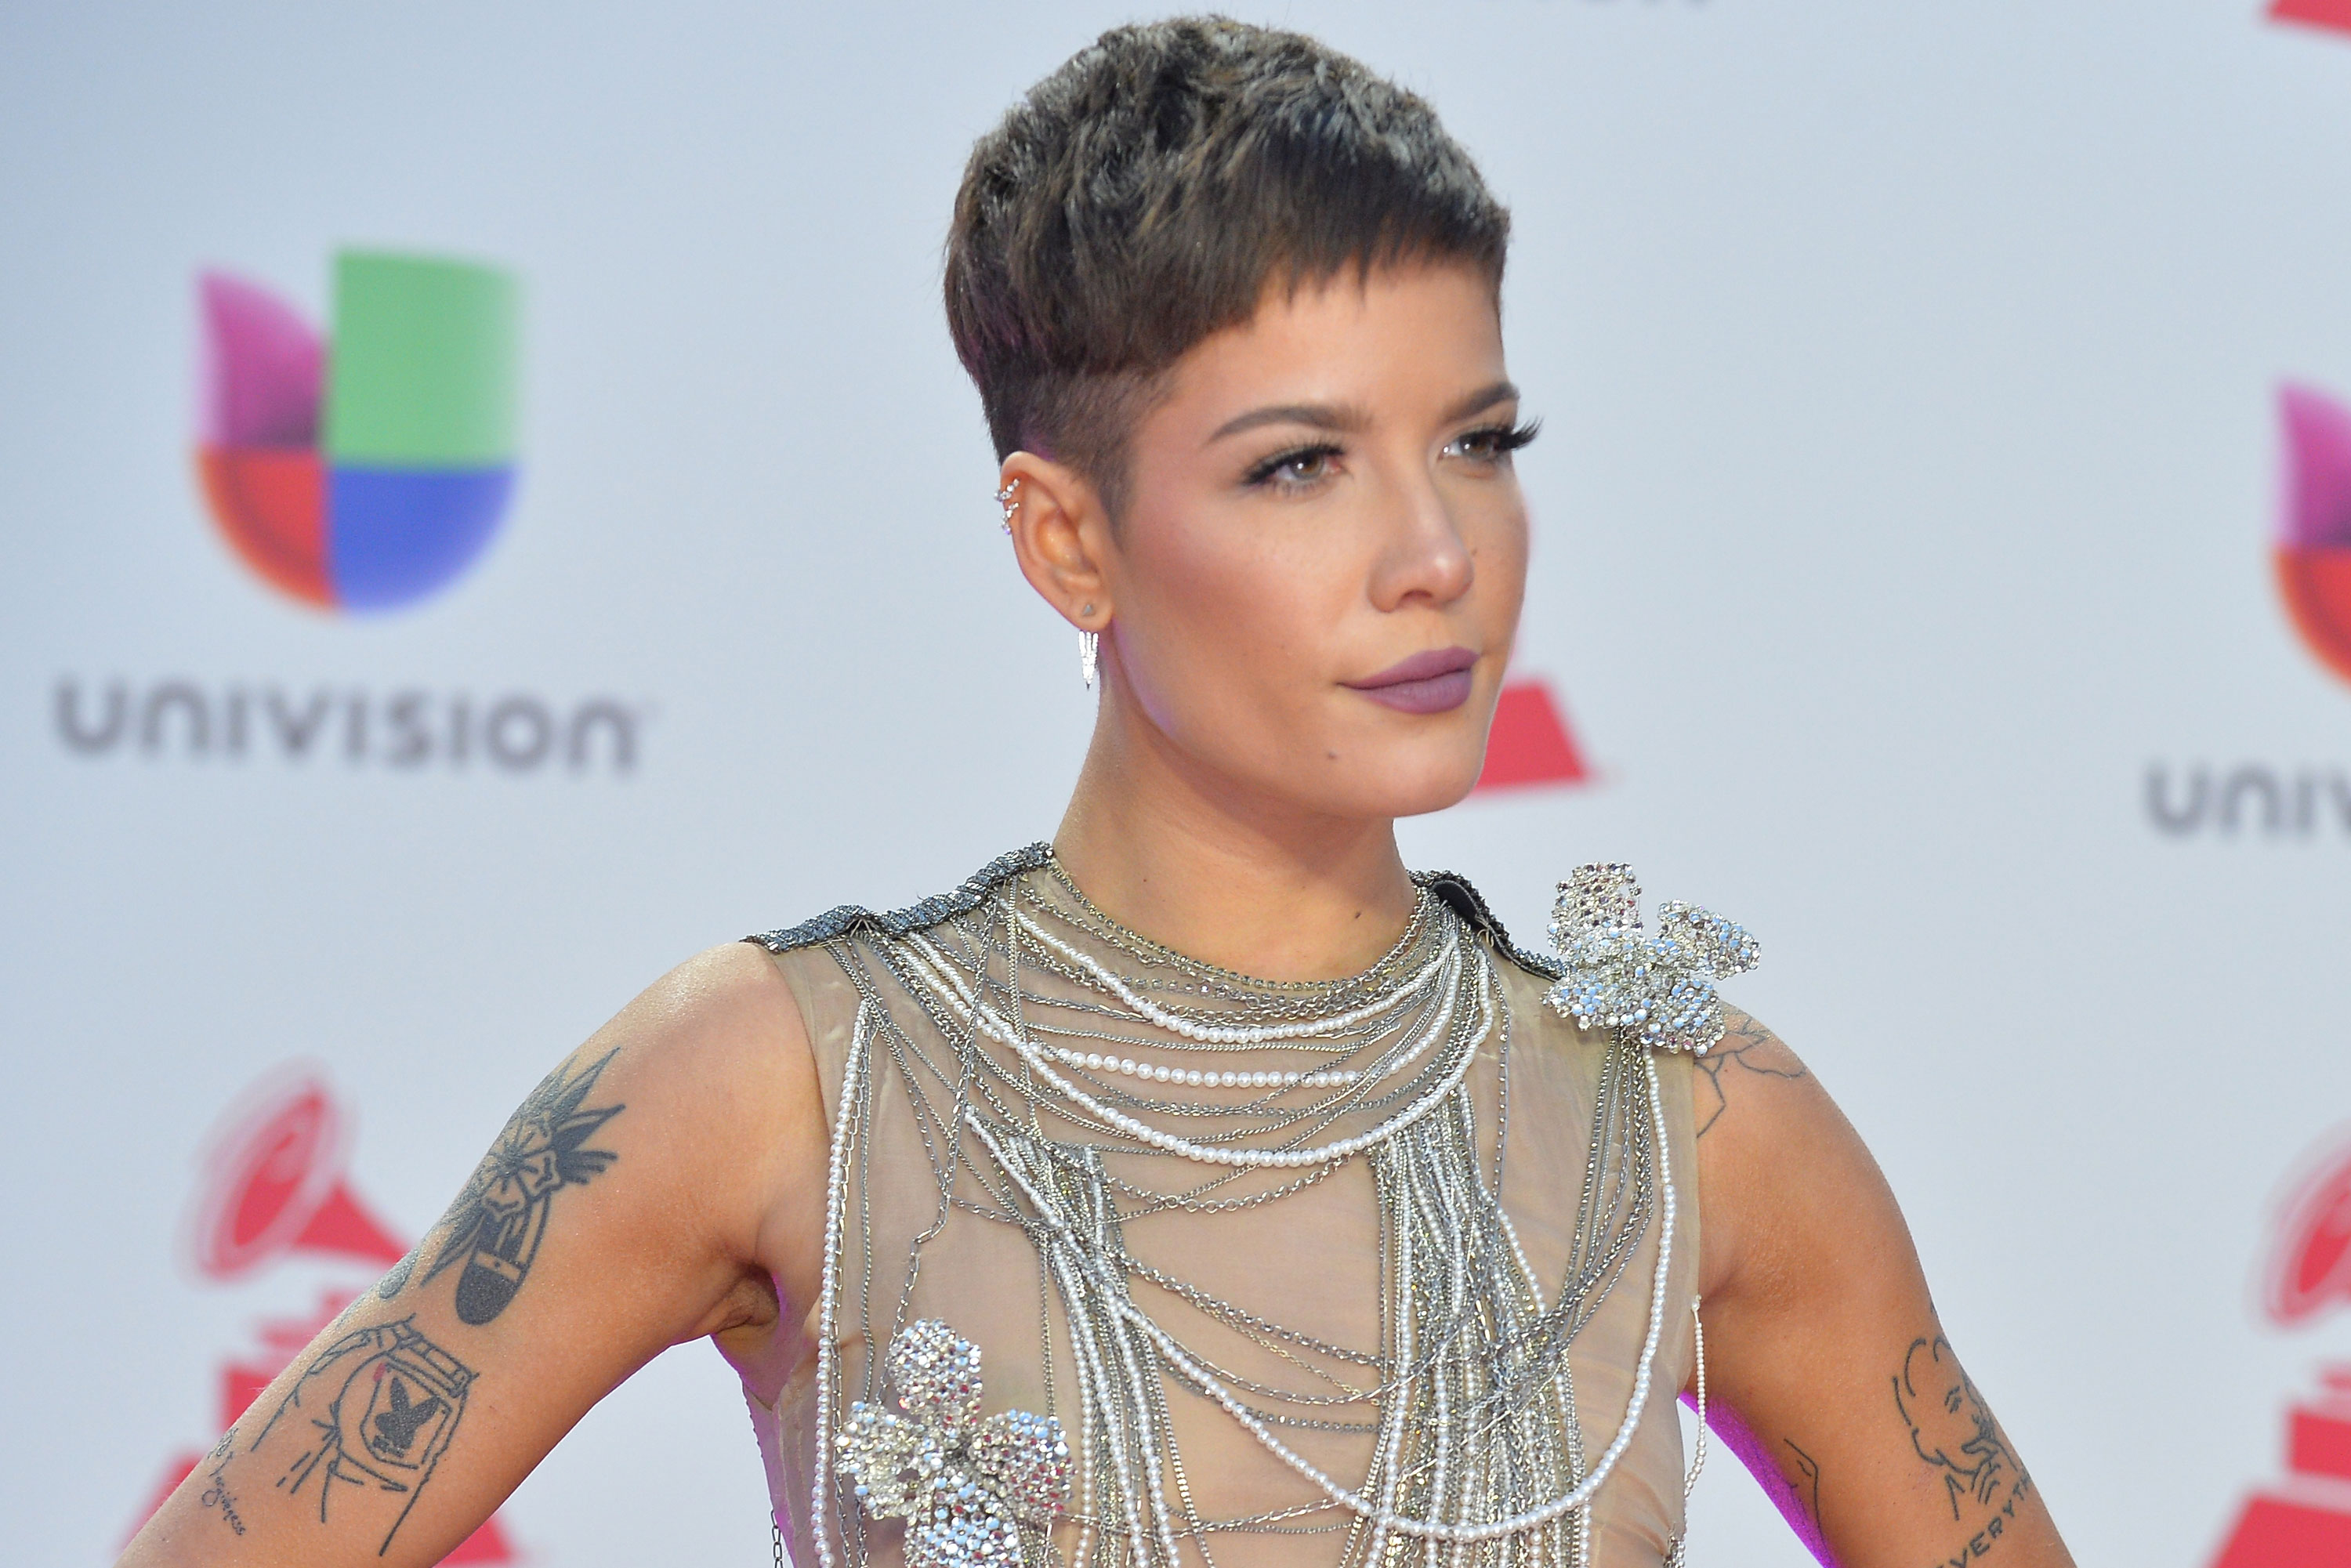 """Halsey Says Her Unborn Baby is a """"Mini Human."""" But She's OK With Killing Other Babies in Abortions"""